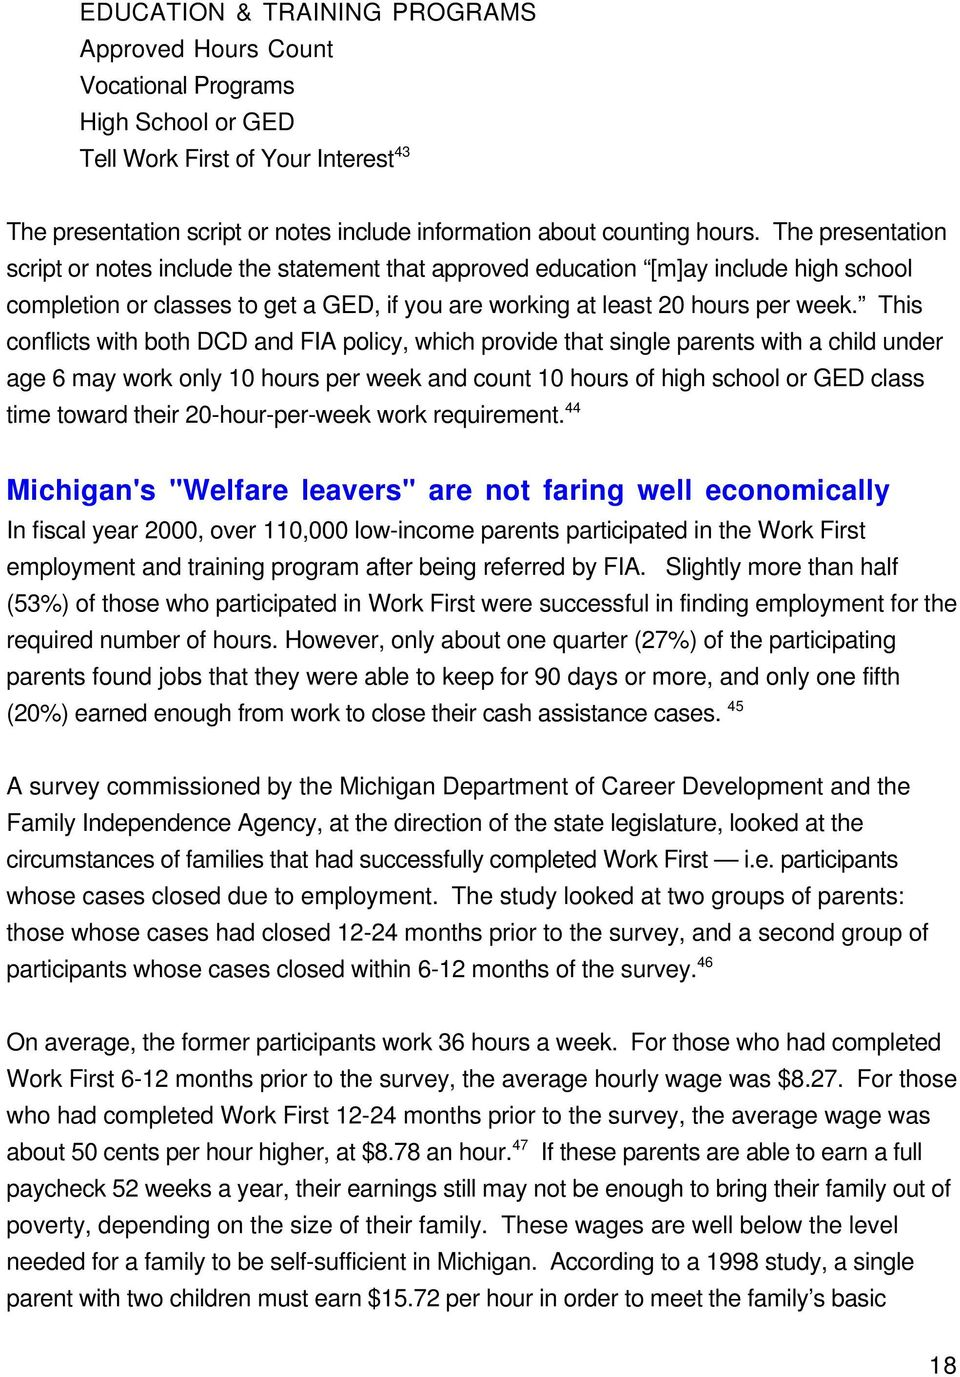 This conflicts with both DCD and FIA policy, which provide that single parents with a child under age 6 may work only 10 hours per week and count 10 hours of high school or GED class time toward